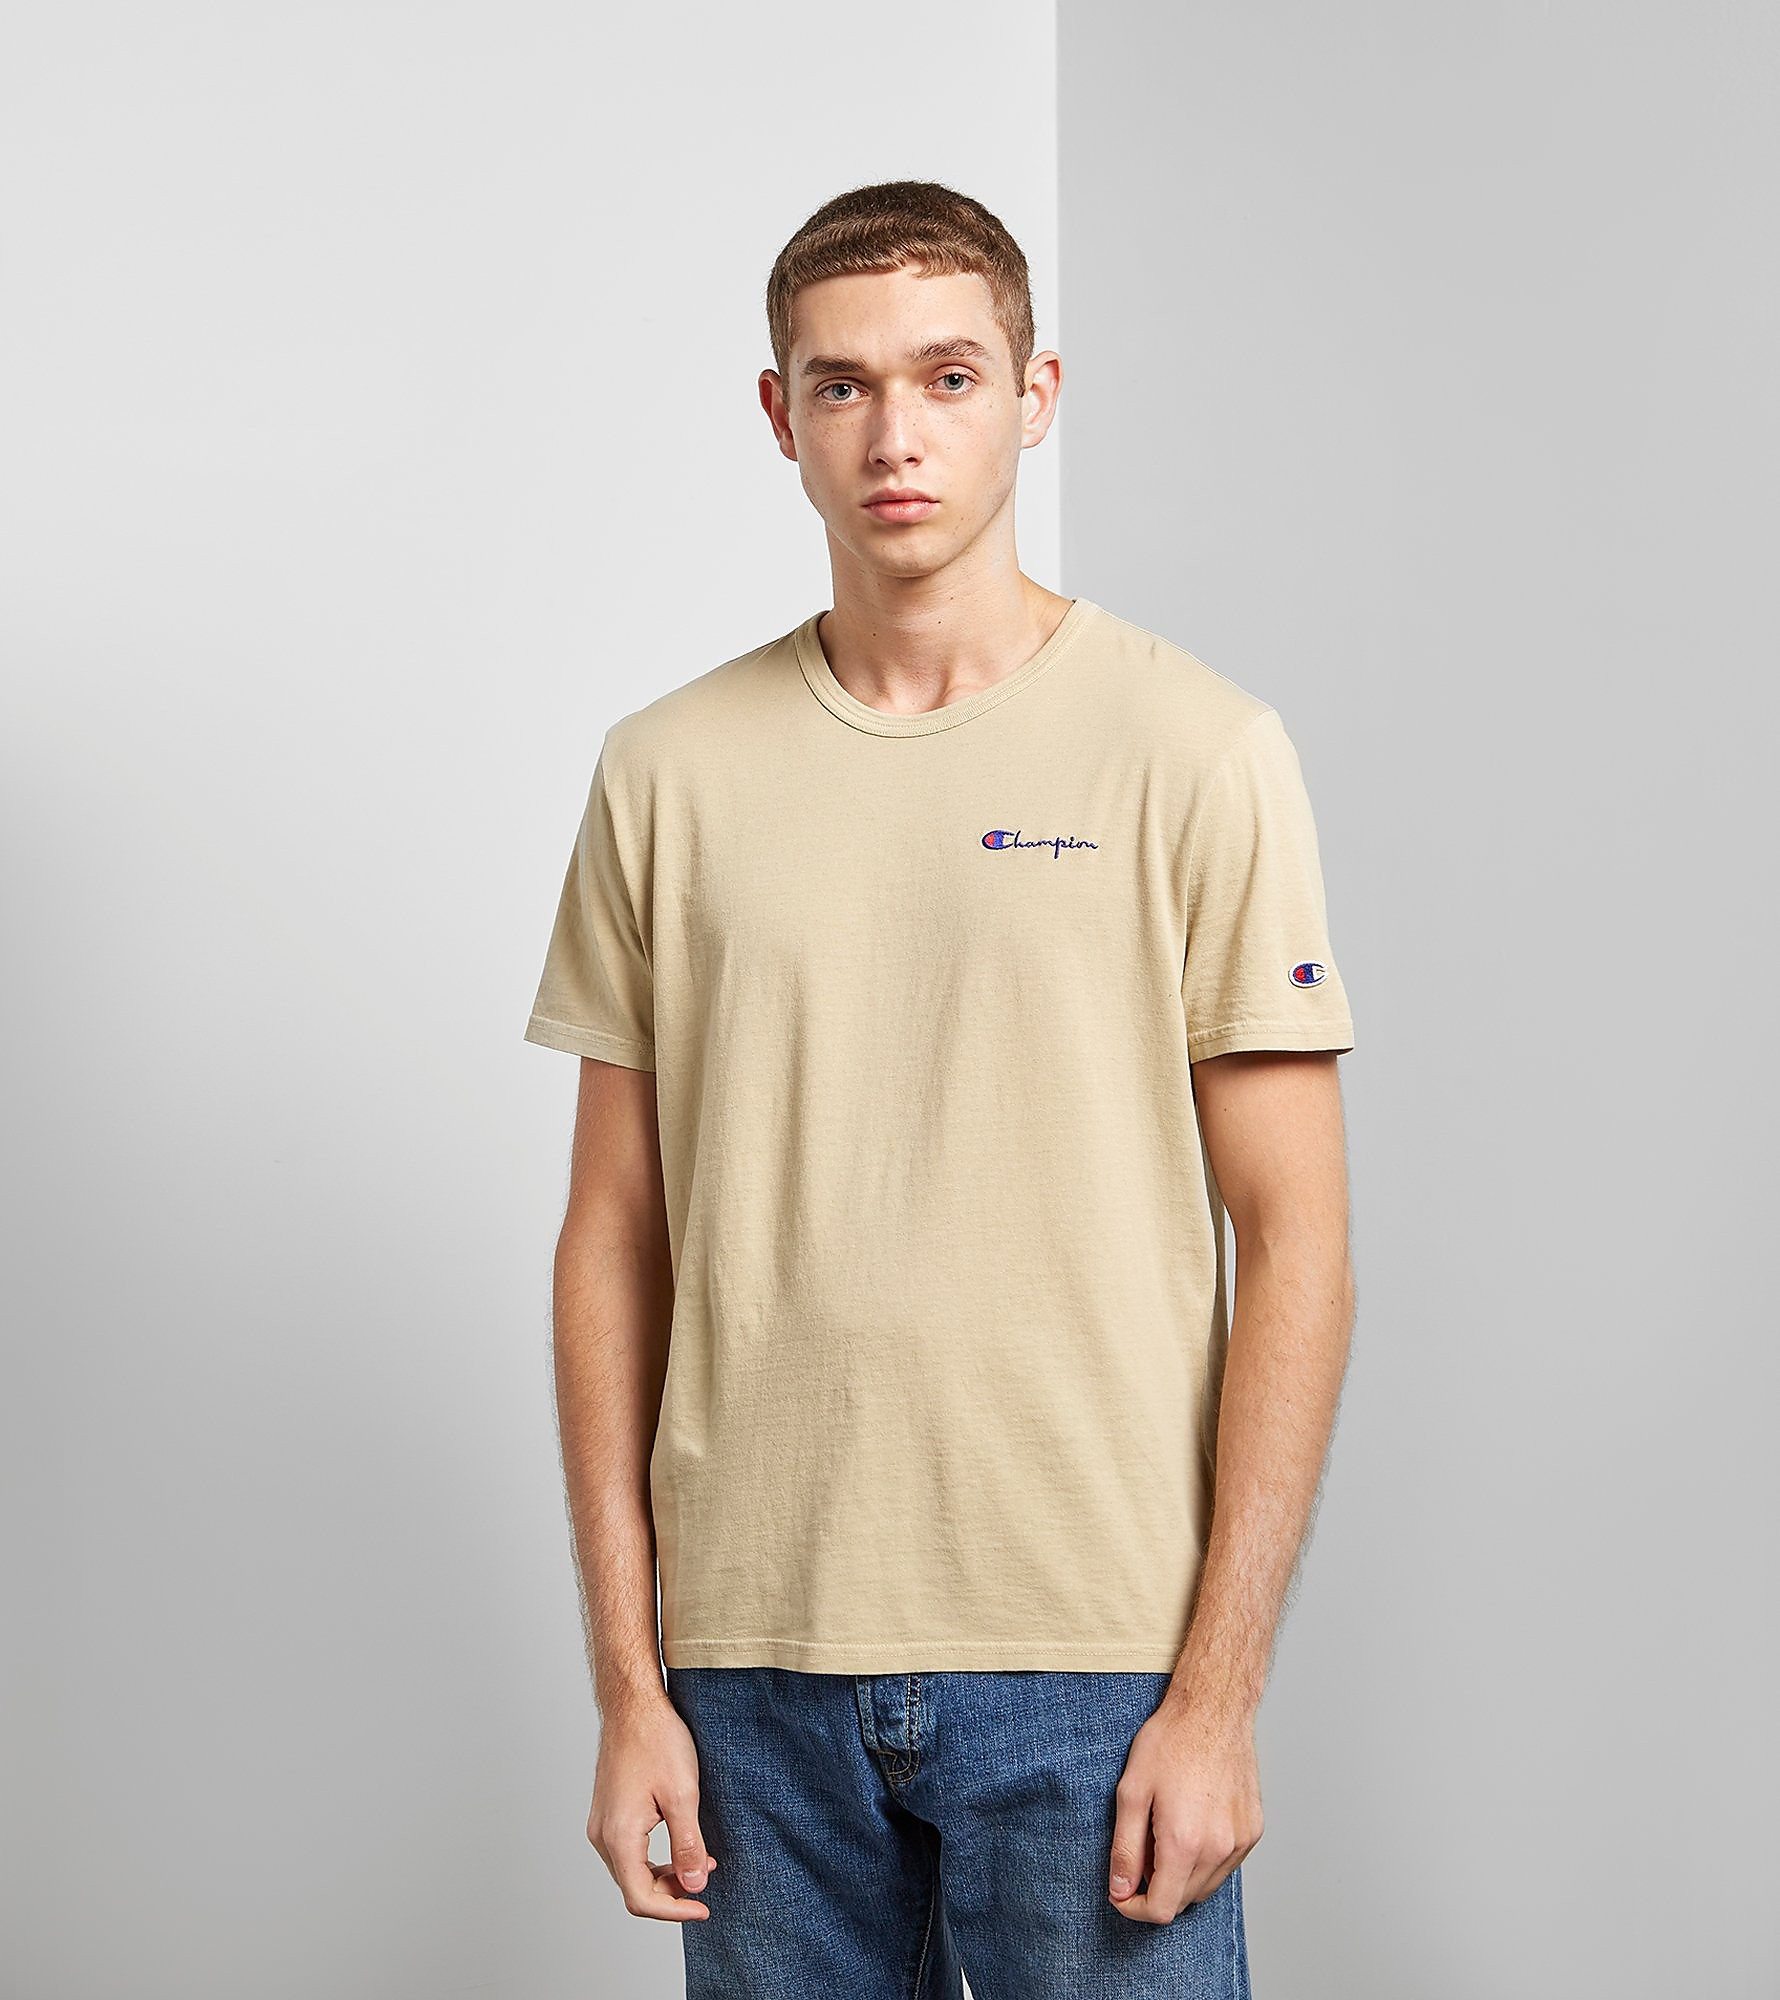 Champion T-Shirt Crew Reverse Weave - Exclusivité size?